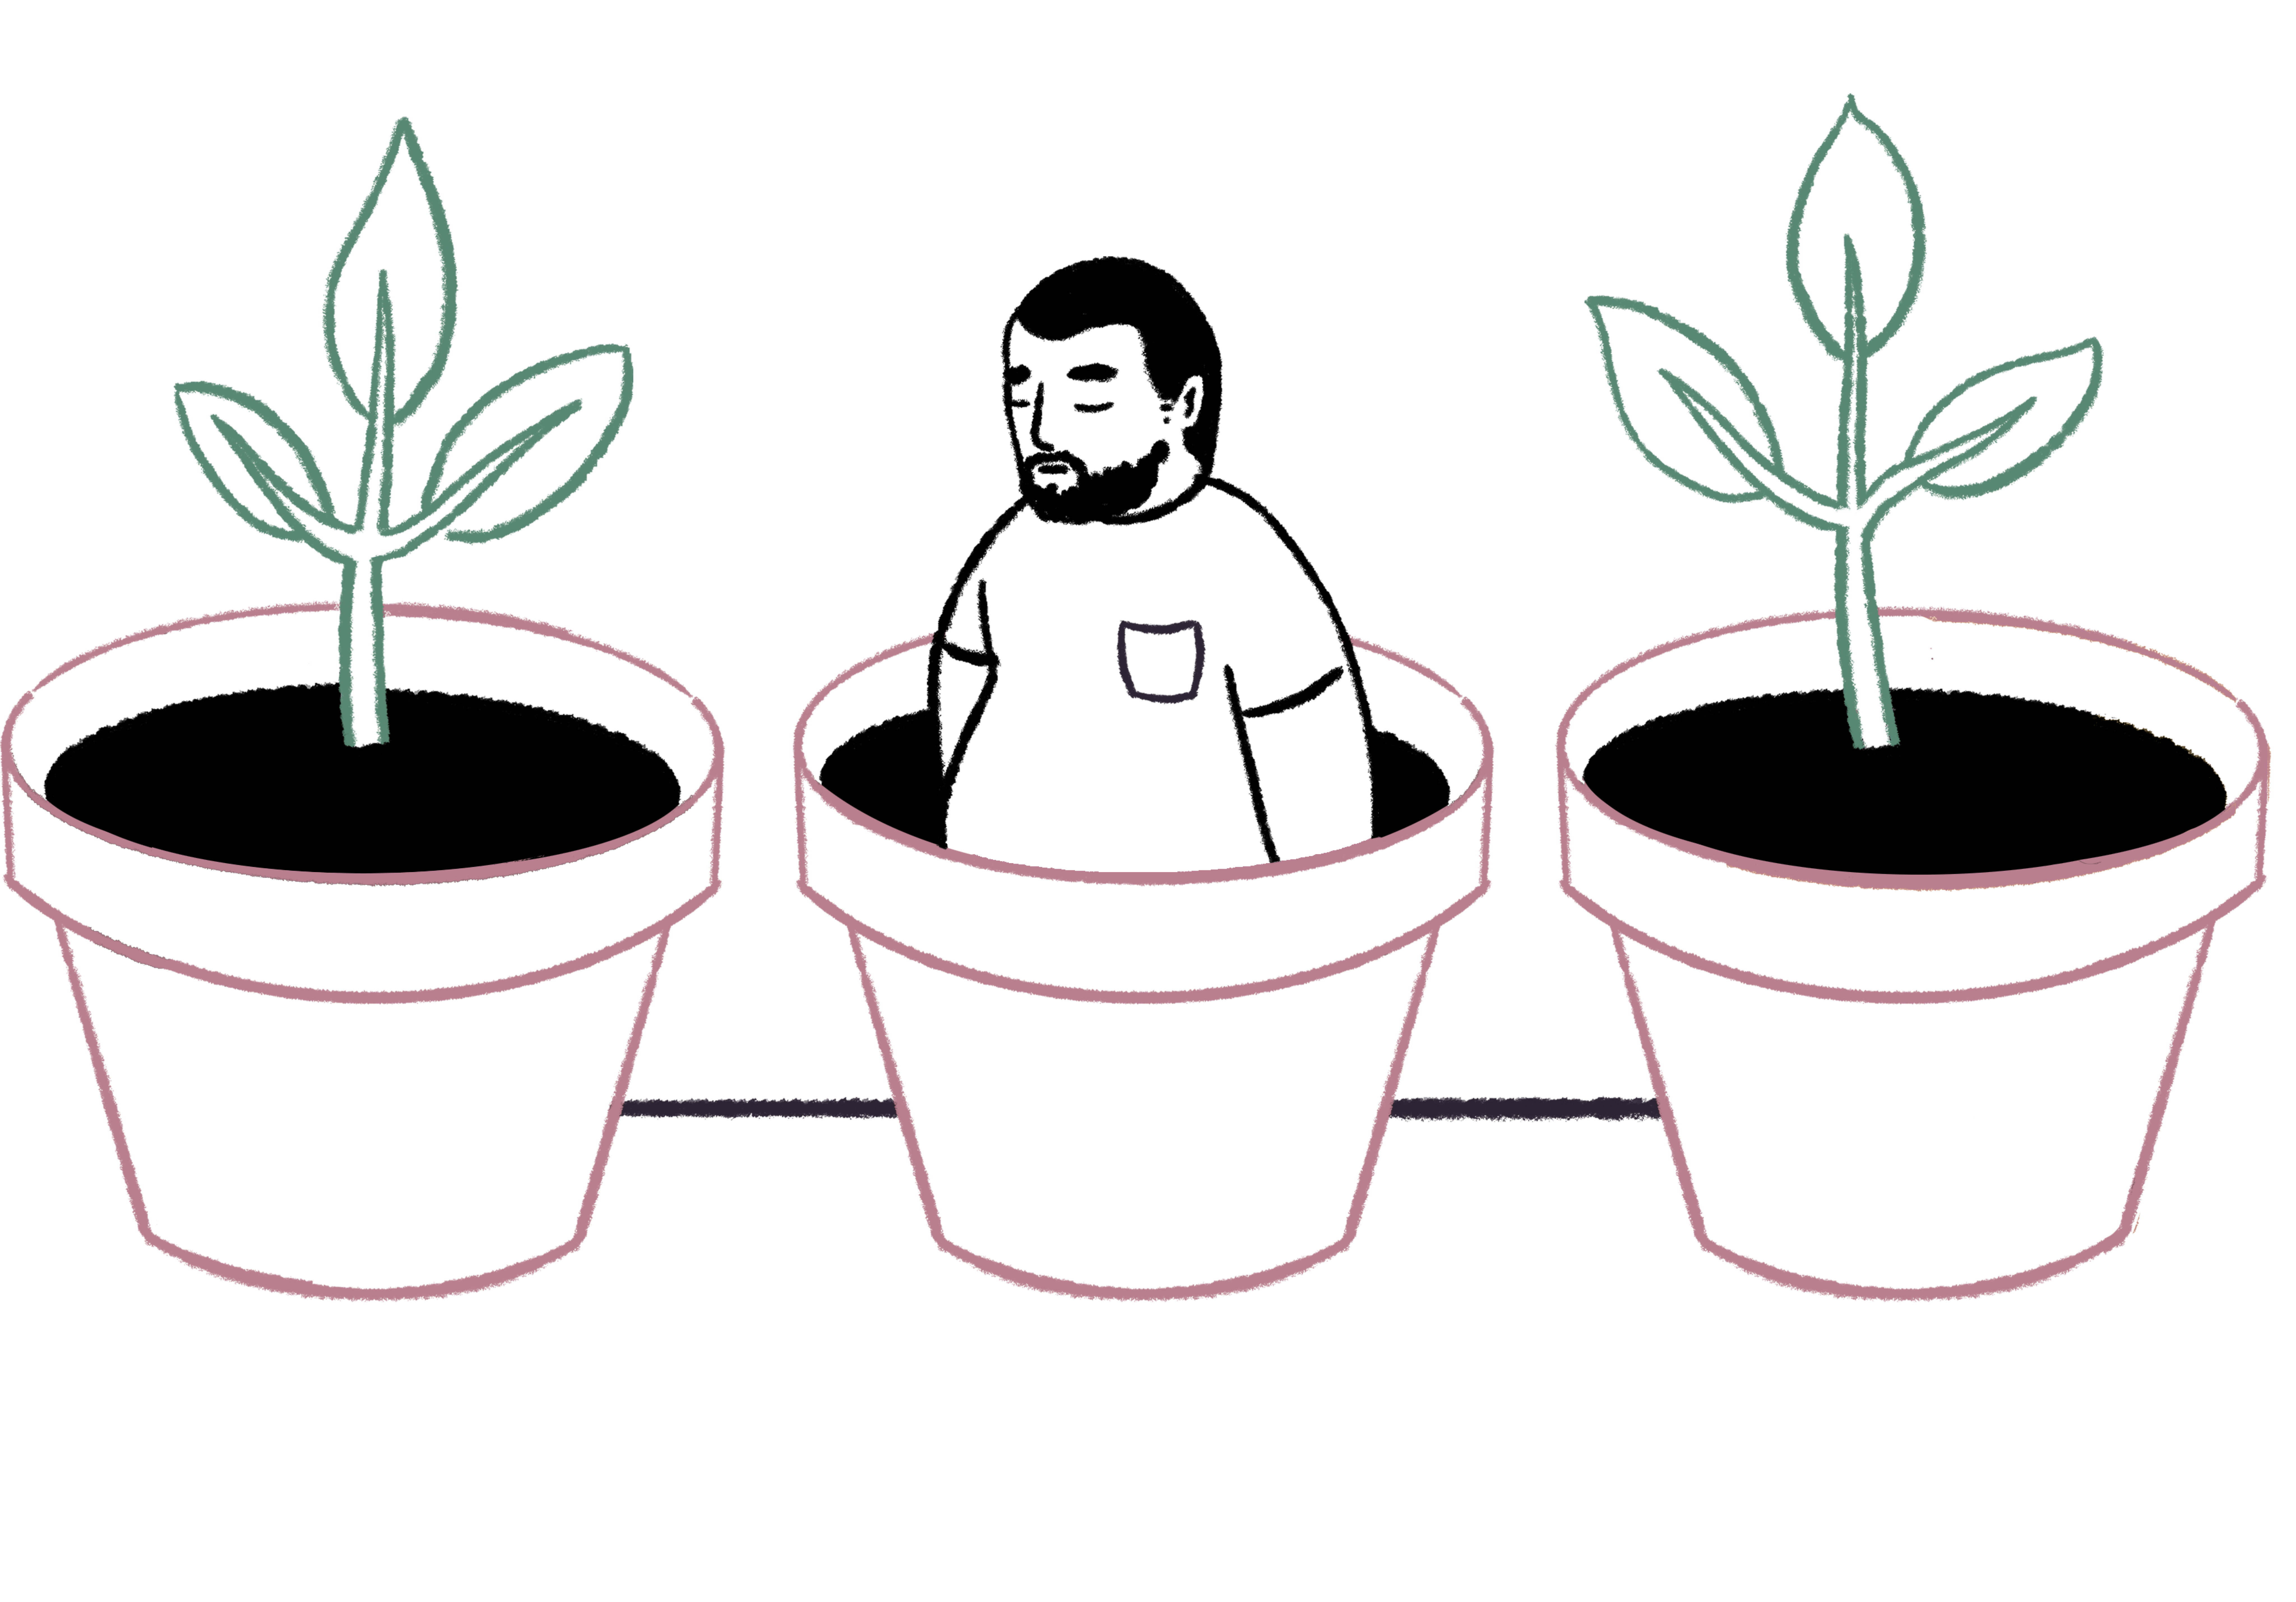 illustration of three potted plans with a man growing out of the middle one